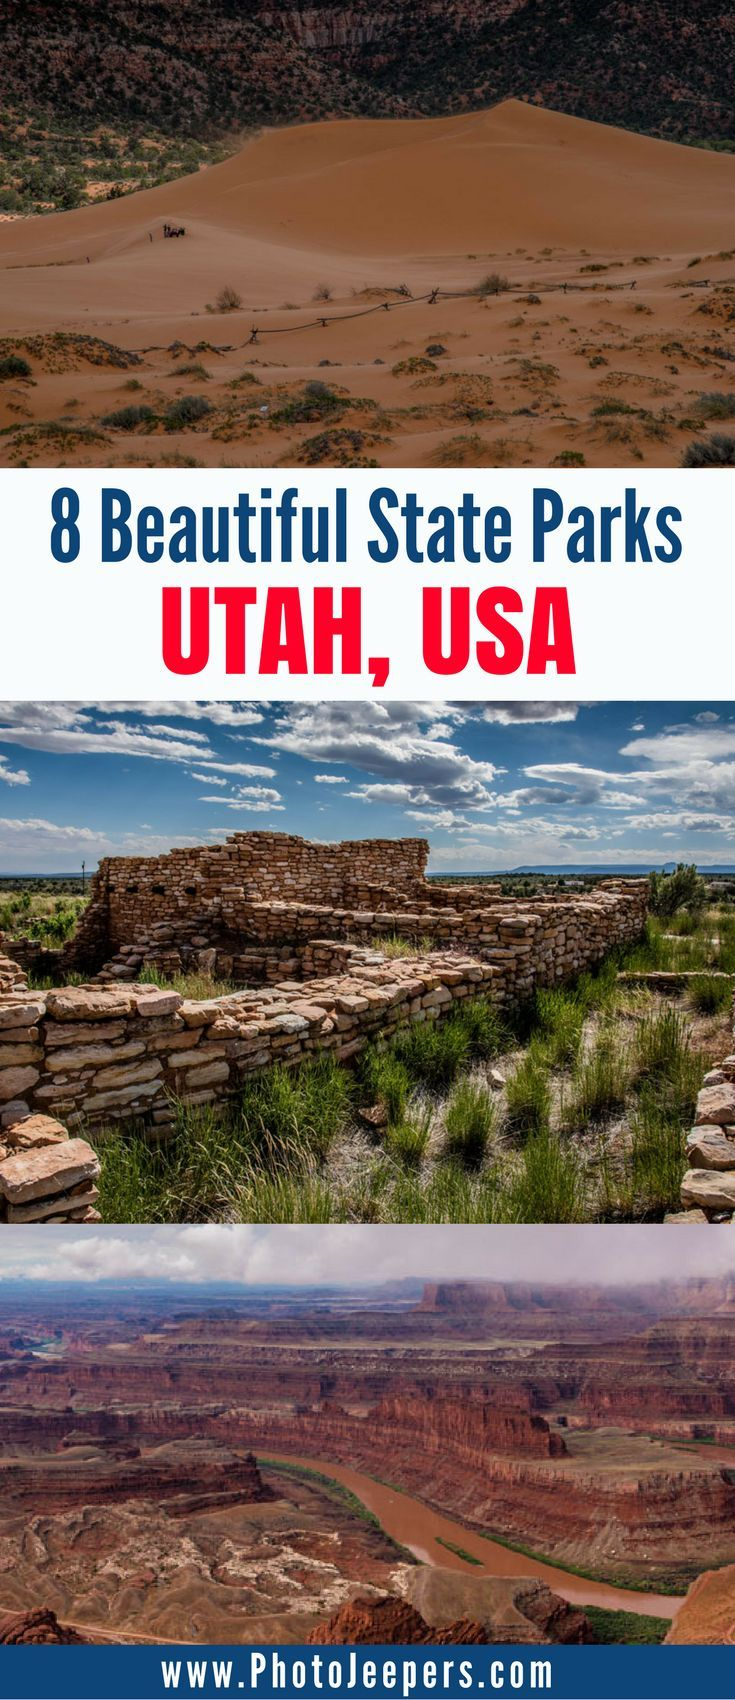 Utah has many beautiful state parks to explore. If you're looking for outdoor things to do in Utah, you'll want to check these state parks out. They're perfect for hiking in Utah, taking pictures, and seeing the diverse landscapes Utah has to offer. Make sure you save these Utah state parks to your Utah travel board so you can find them later. #utah #utahstateparks #travel